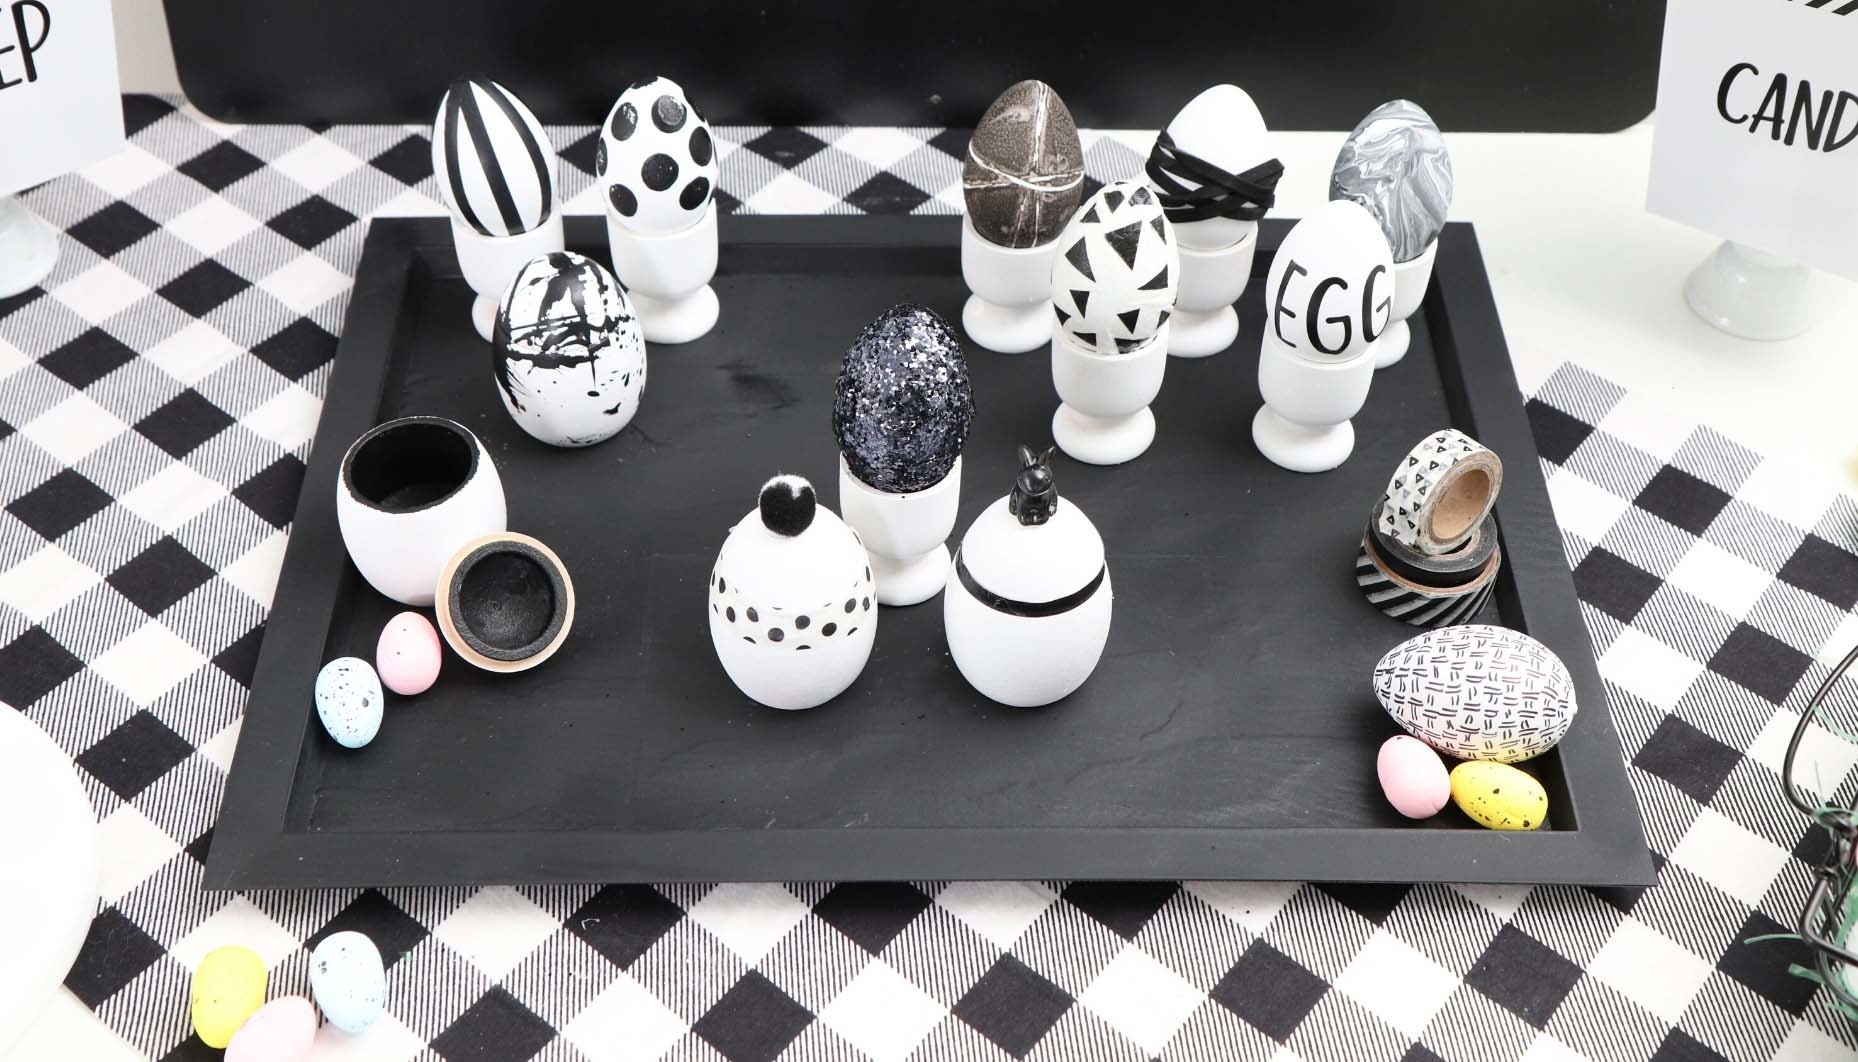 Modern Black and White Easter Egg Decorating Ideas - get details and more Easter activity ideas now at fernandmaple.com!